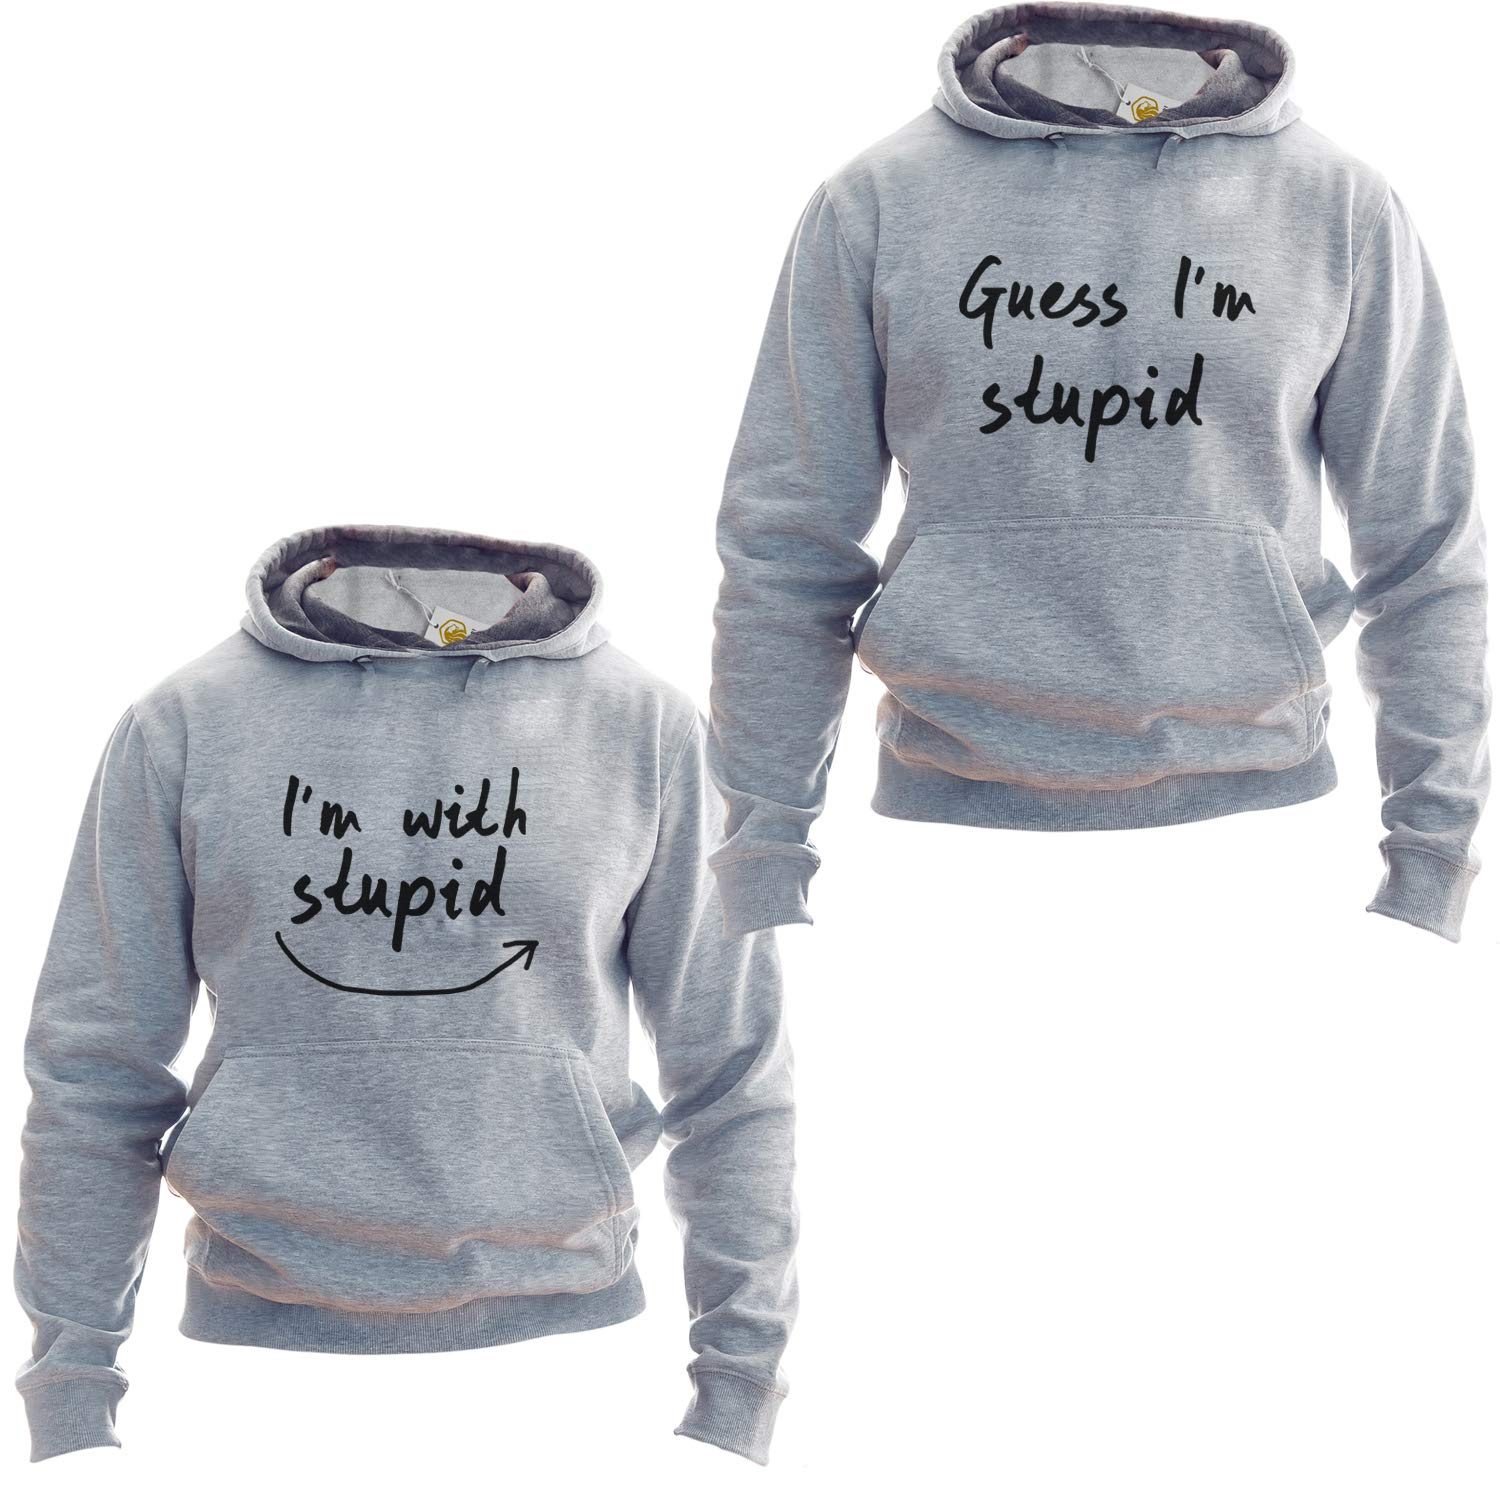 Im with Stupid Pullover Guess Im Stupid Funny Couple Pullover Best Friends Outfit